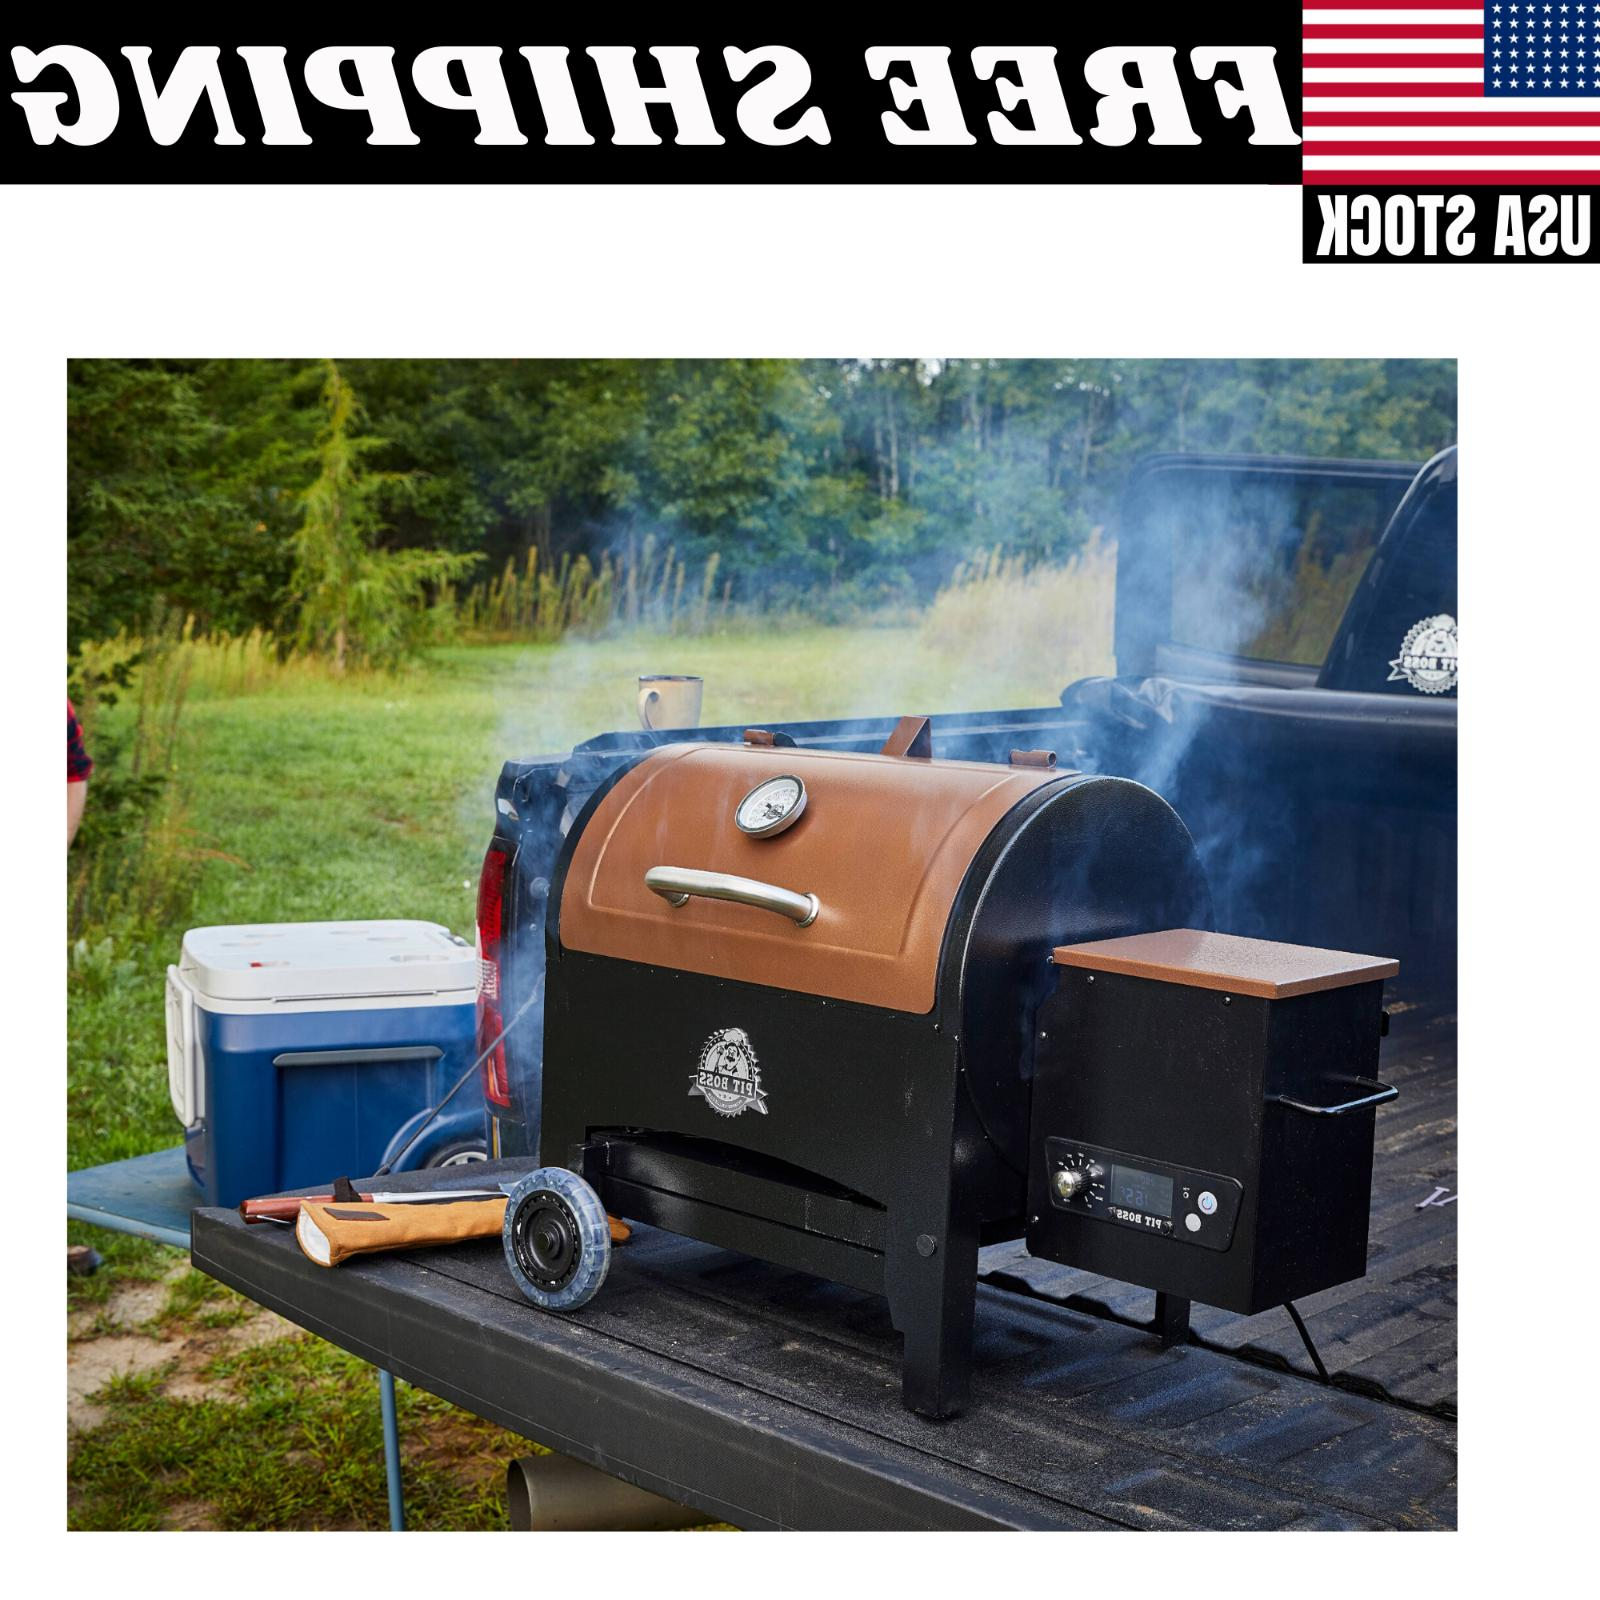 Pit In. Tailgate, Pellet Grill with Folding Legs